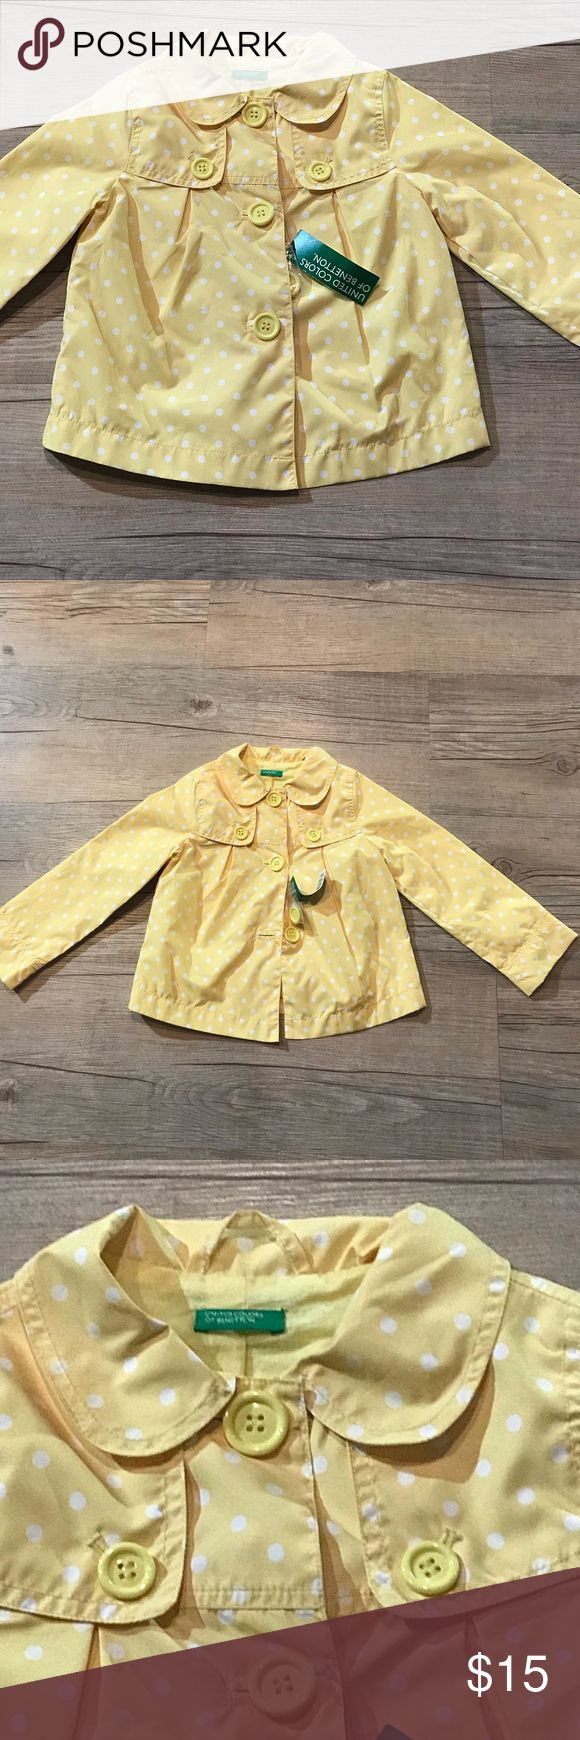 NWT Yellow Polka Dot Rain Coat United Colors Of Benetton, size 5, new with tags. Bright yellow coat with white Polka dots.  Lightweight rain slicker water resistant material-tag does not say if it's 100% waterproof. Super cute for spring rainy days! (18-2-36) United Colors Of Benetton Jackets & Coats Raincoats